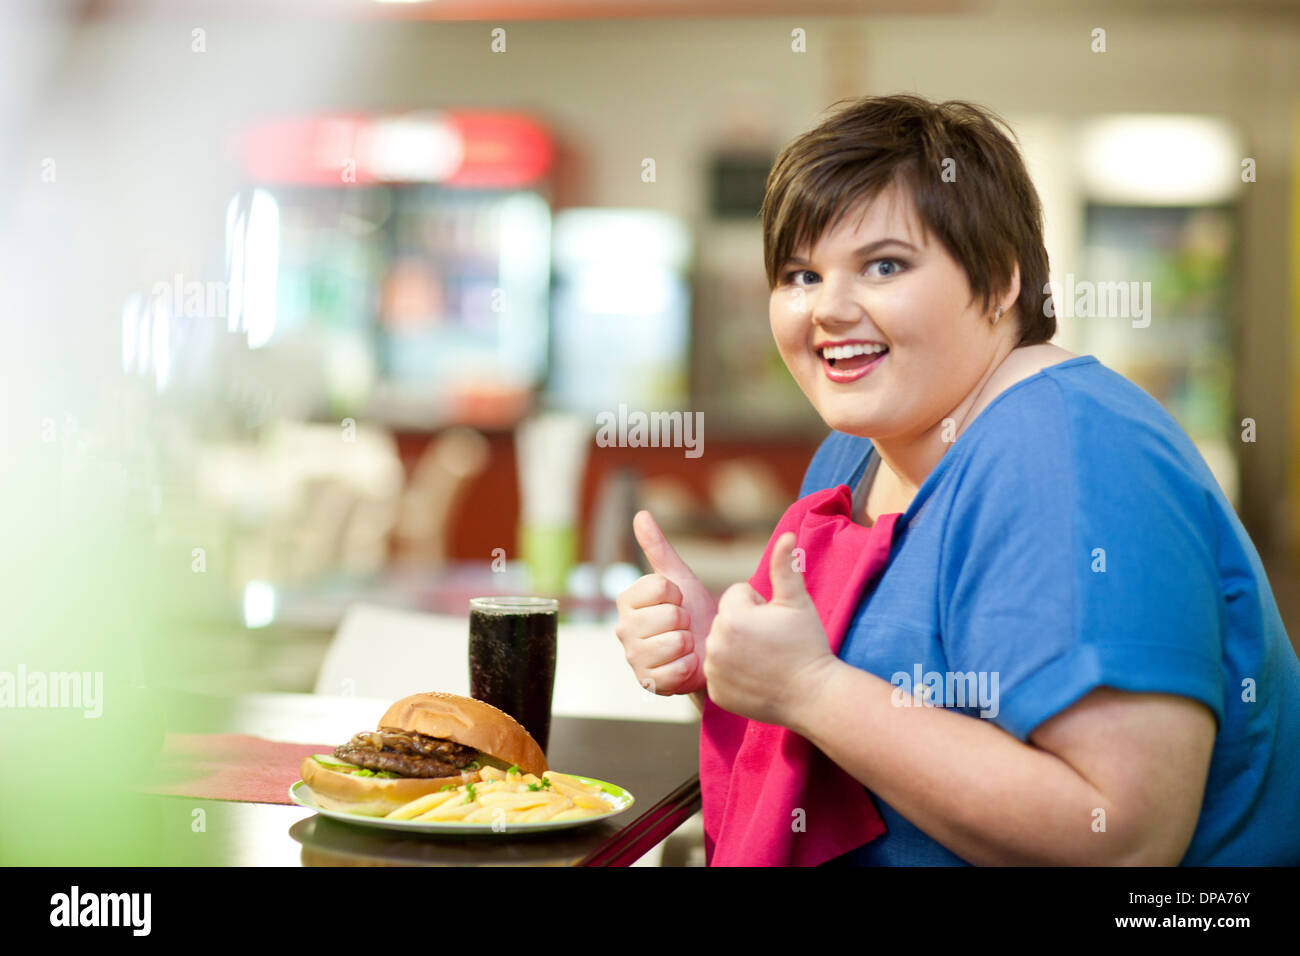 Young woman in cafe with unhealthy meal - Stock Image